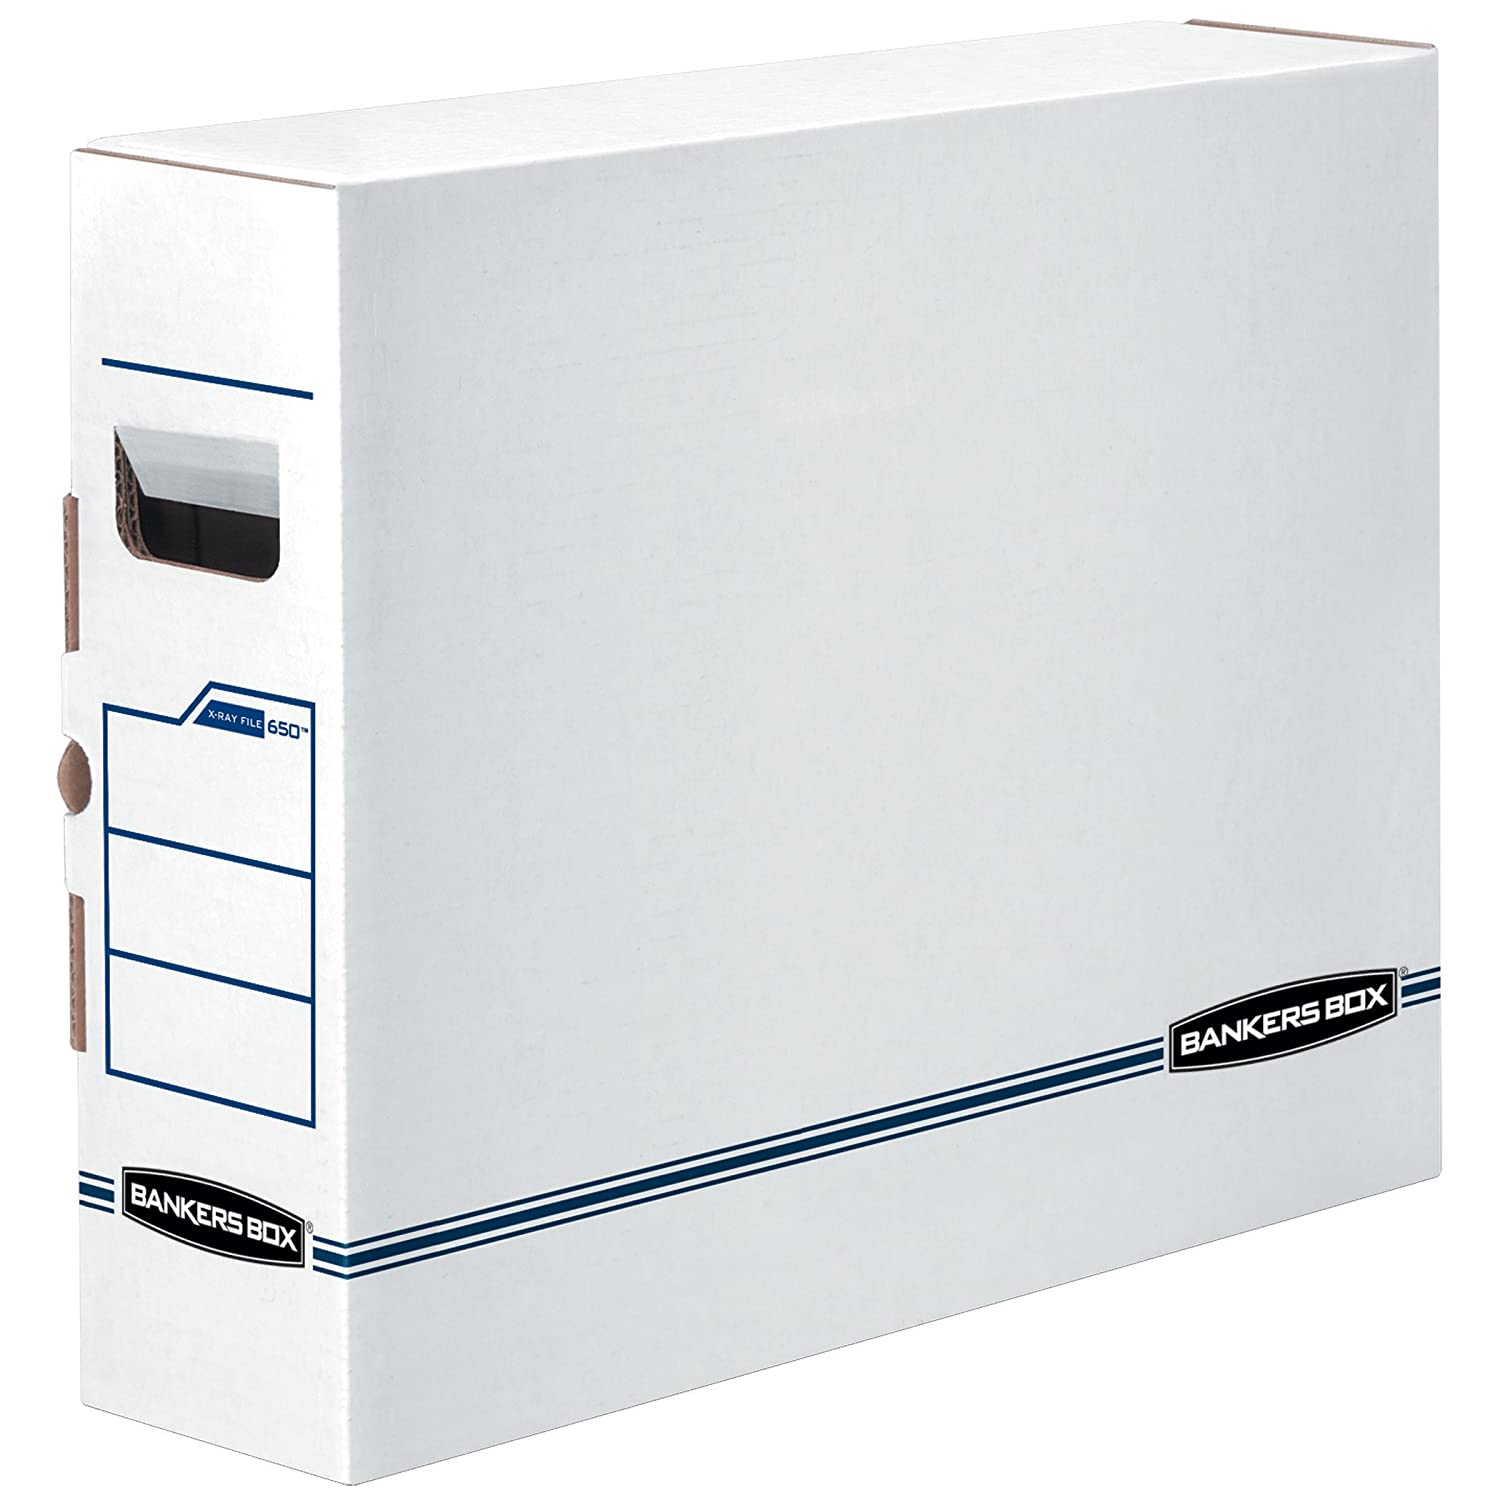 Bankers Box X-Ray Storage Boxes, X-ray Film, 6 Pack (00650) Fellowes 00650